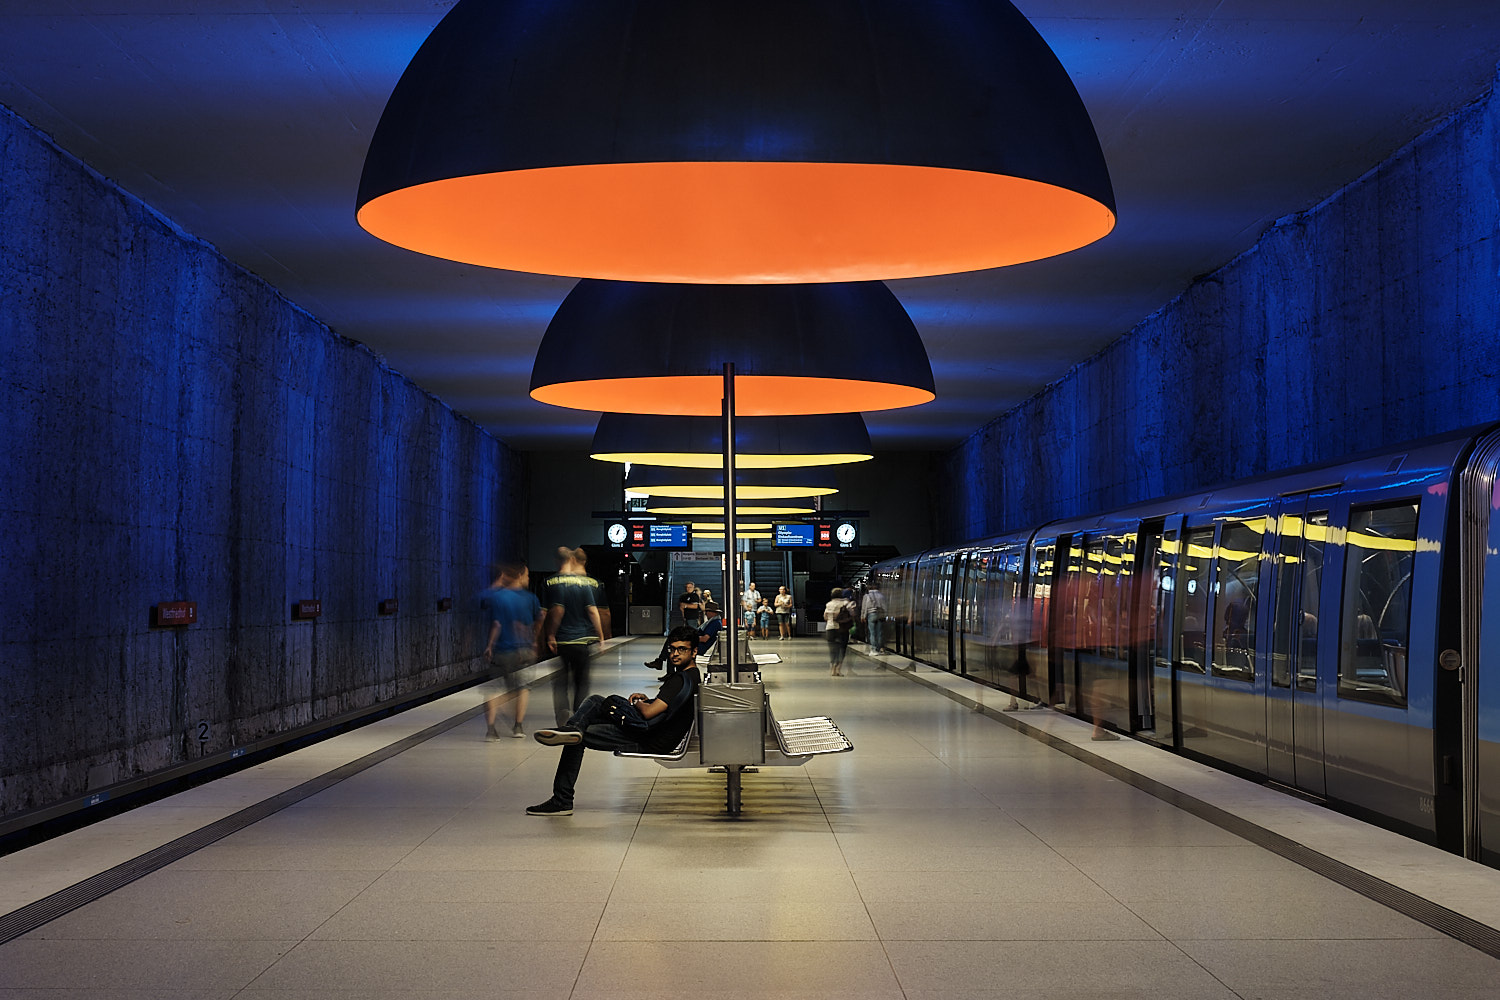 Westfriedhof long exposition U-Bahn stationed passengers moving in. Orange and yellow ceiling hanging lamps from Ingo Maurer